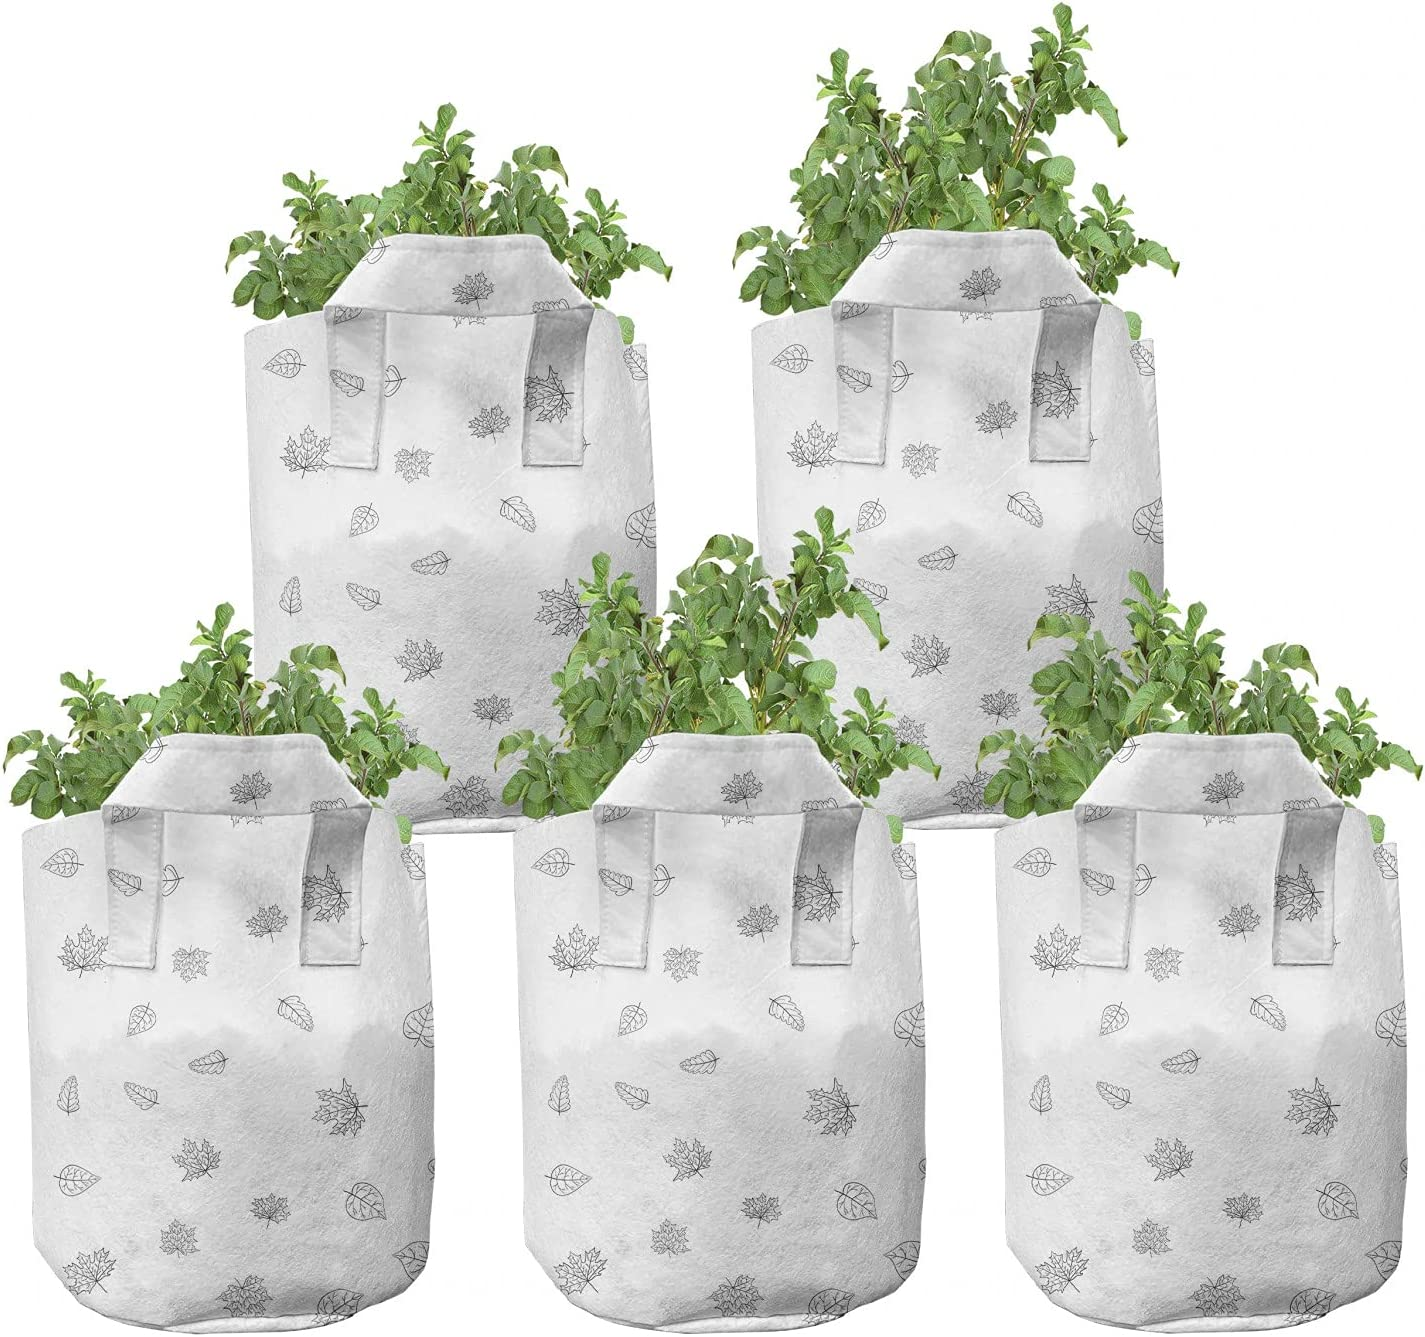 Fixed price for sale Ambesonne Autumn New popularity Grow Bags 5-Pack H Season Fall Foliage Leaves